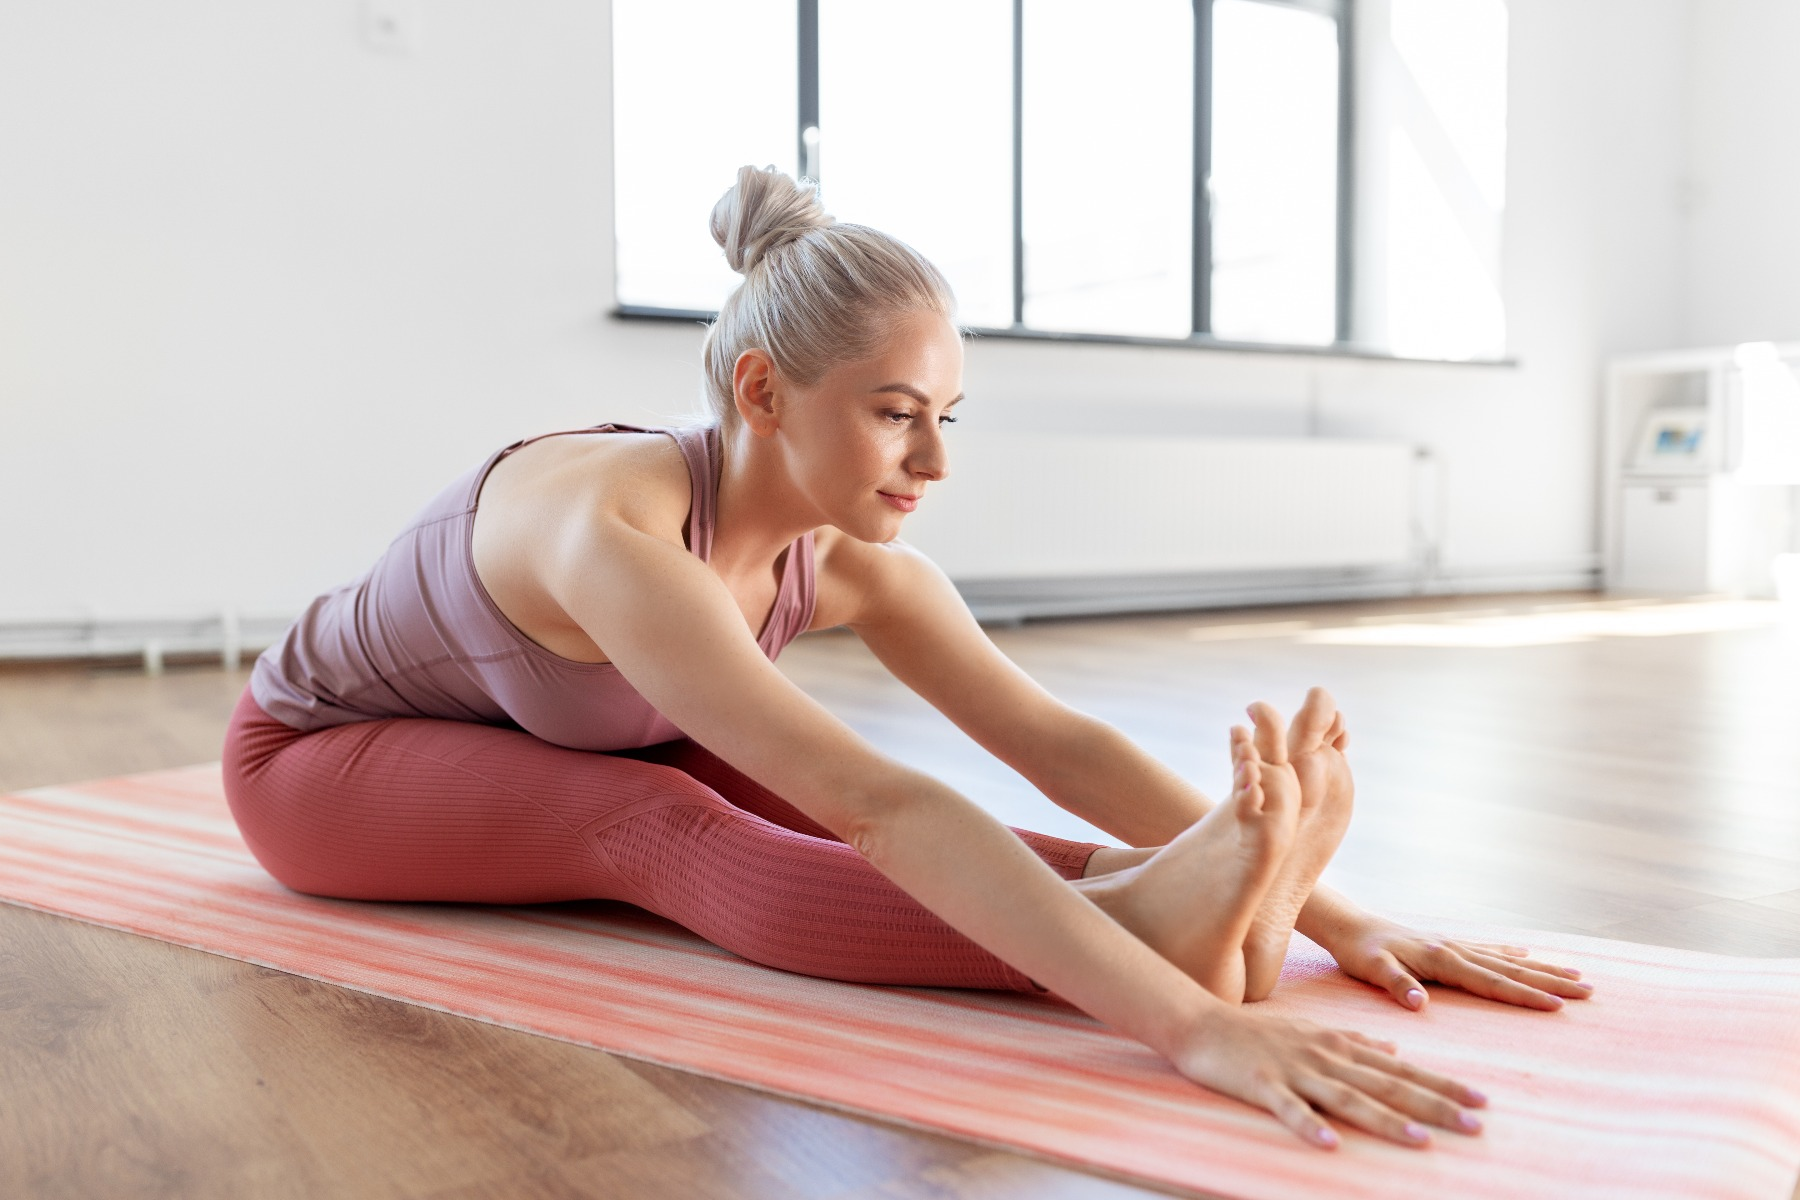 Seated woman on yoga mat stretching into forward fold